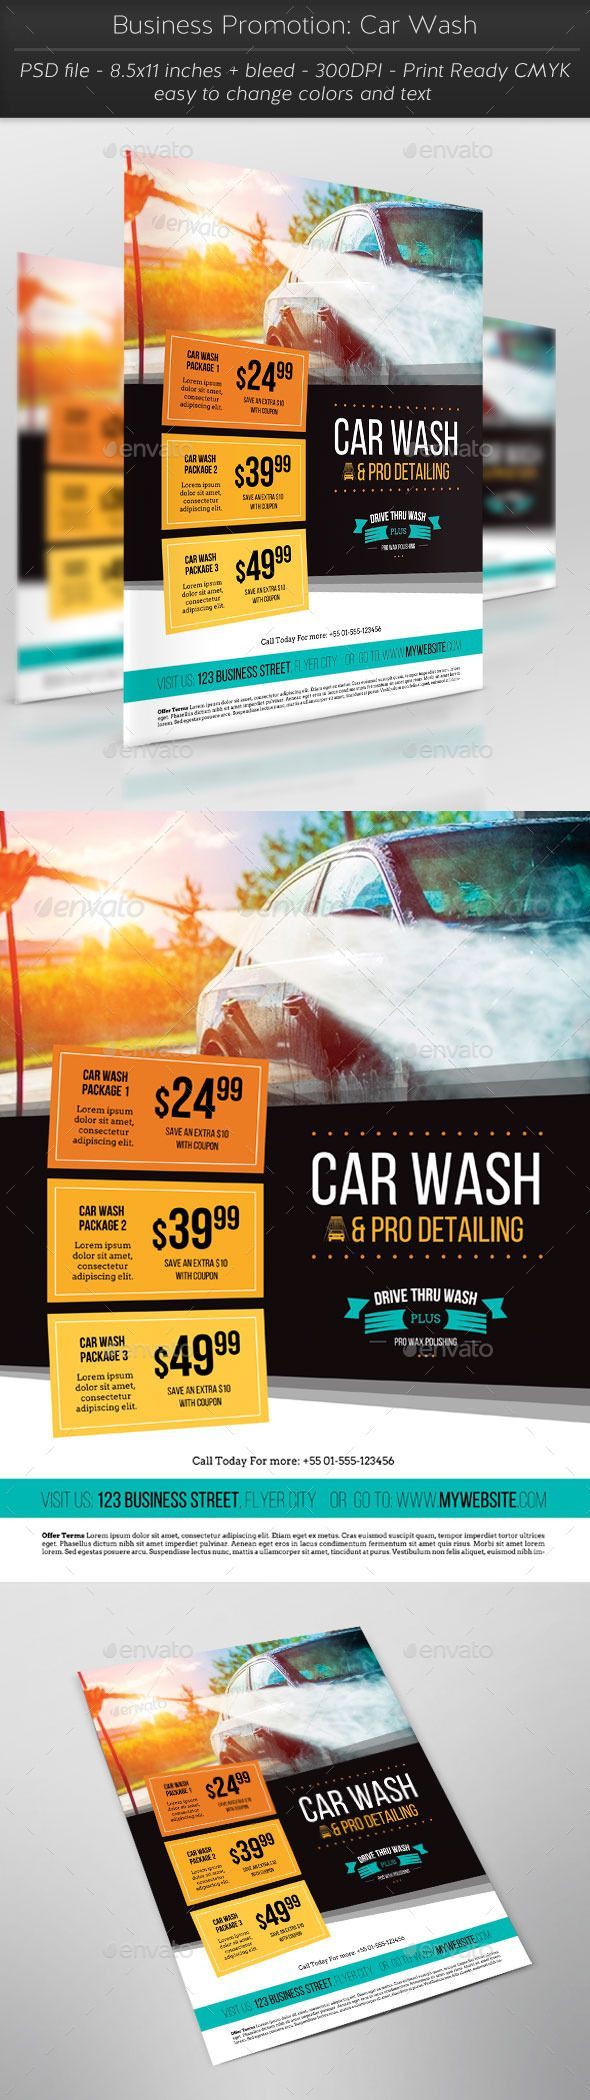 Business Promotion: Car Wash